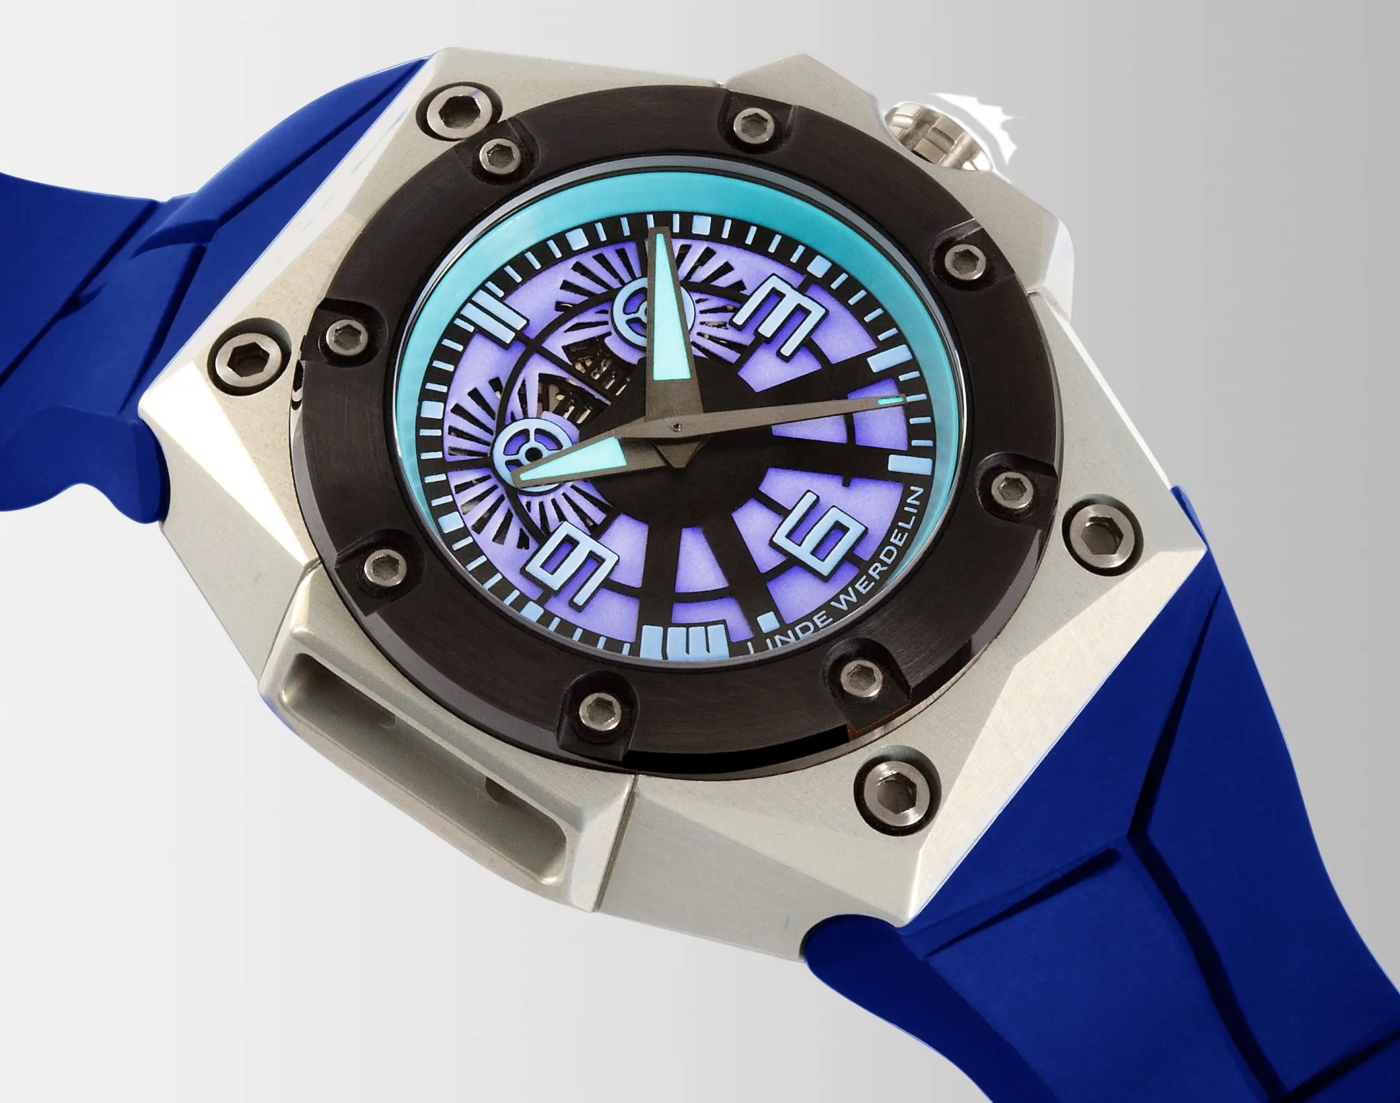 Linde_Werdelin_oktopus_blue_sea_6_-_Europa_Star_watch_magazine_2020